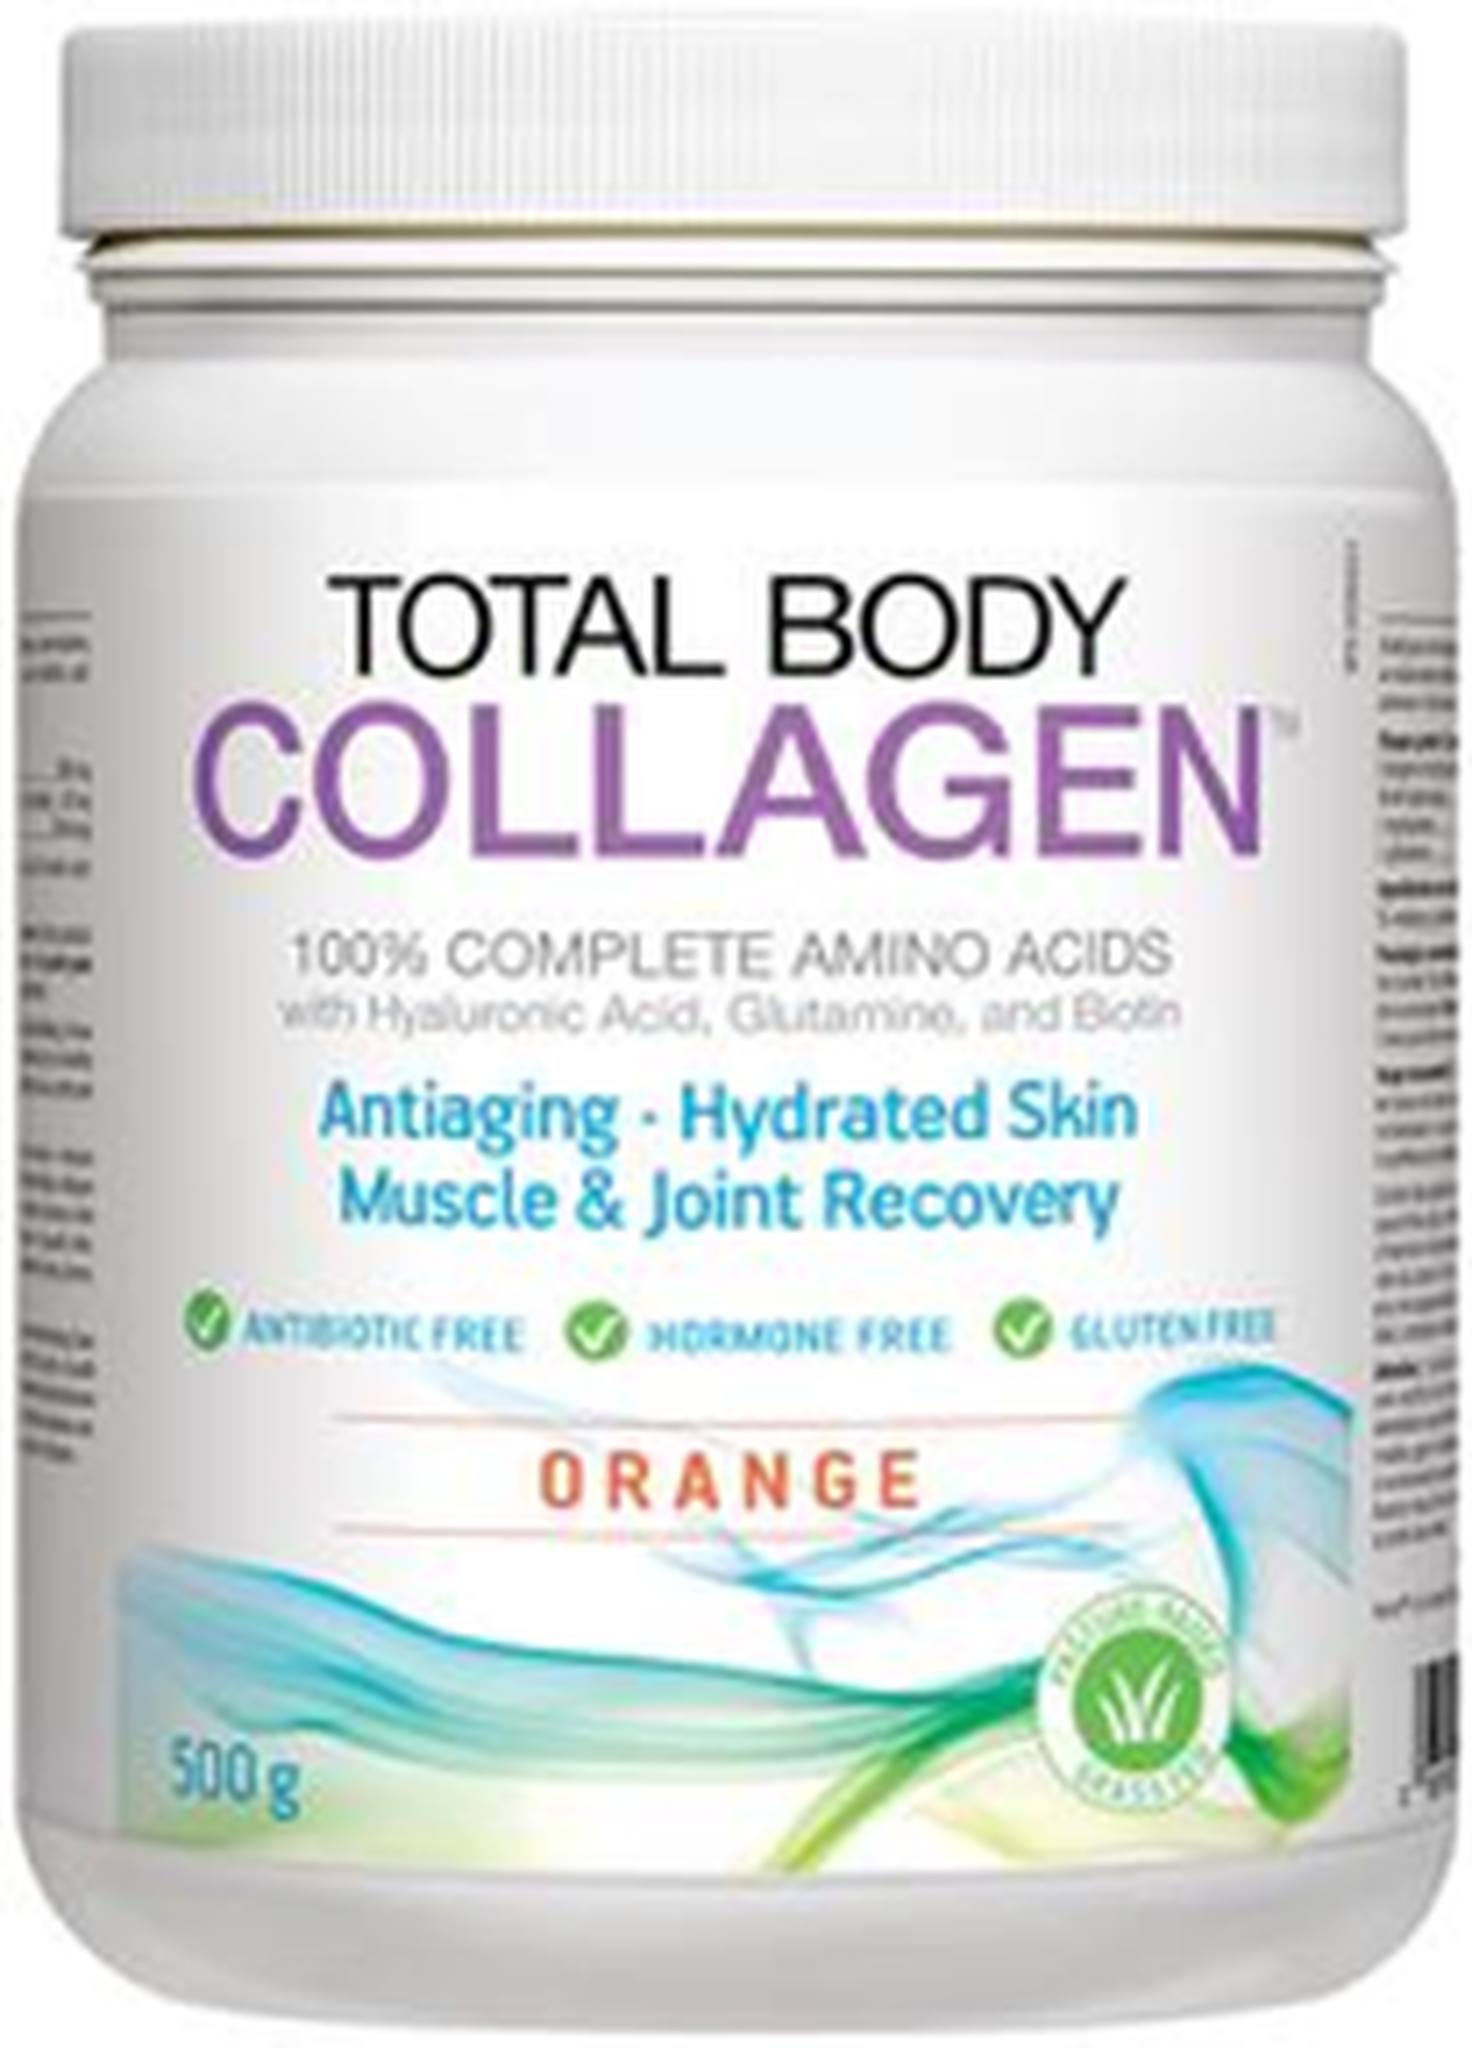 Supplements - Natural Factors - Total Body Collagen (Orange), 500g